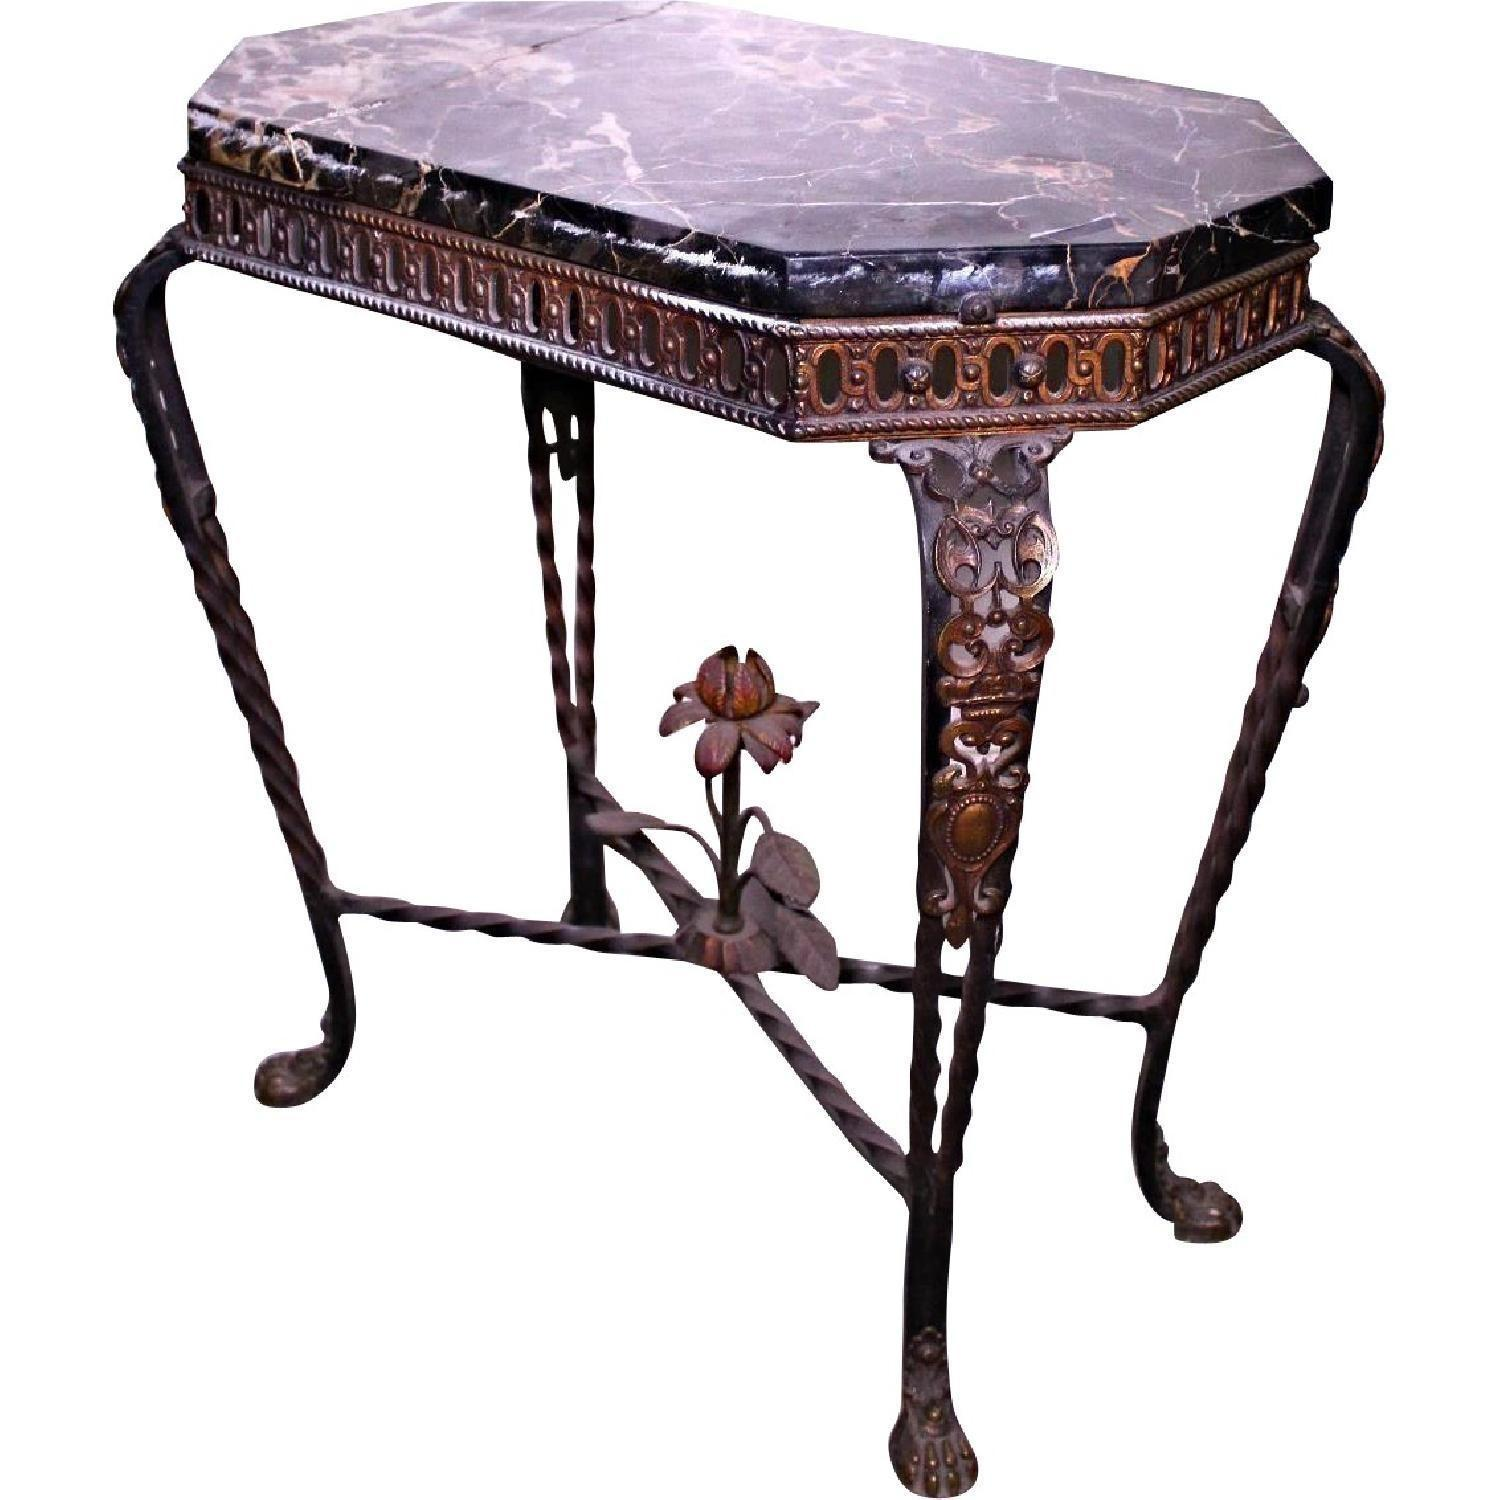 1930 Antique French Art Deco Style Iron Black Marble Console